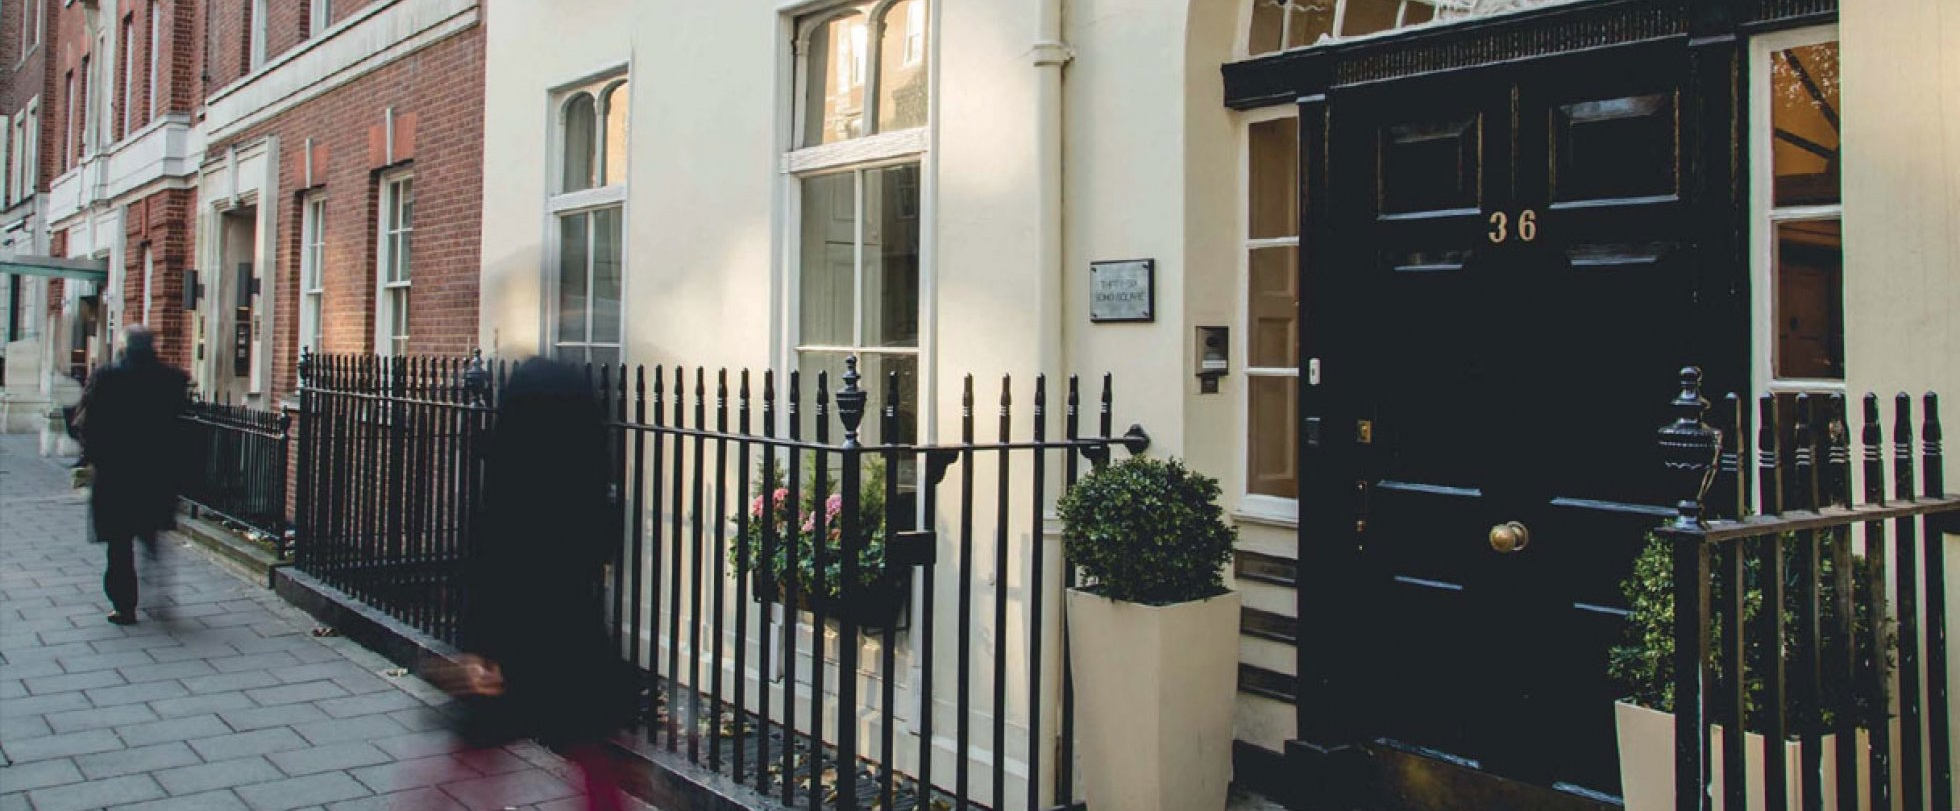 Serviced offices in Soho Square, London (Ventia)